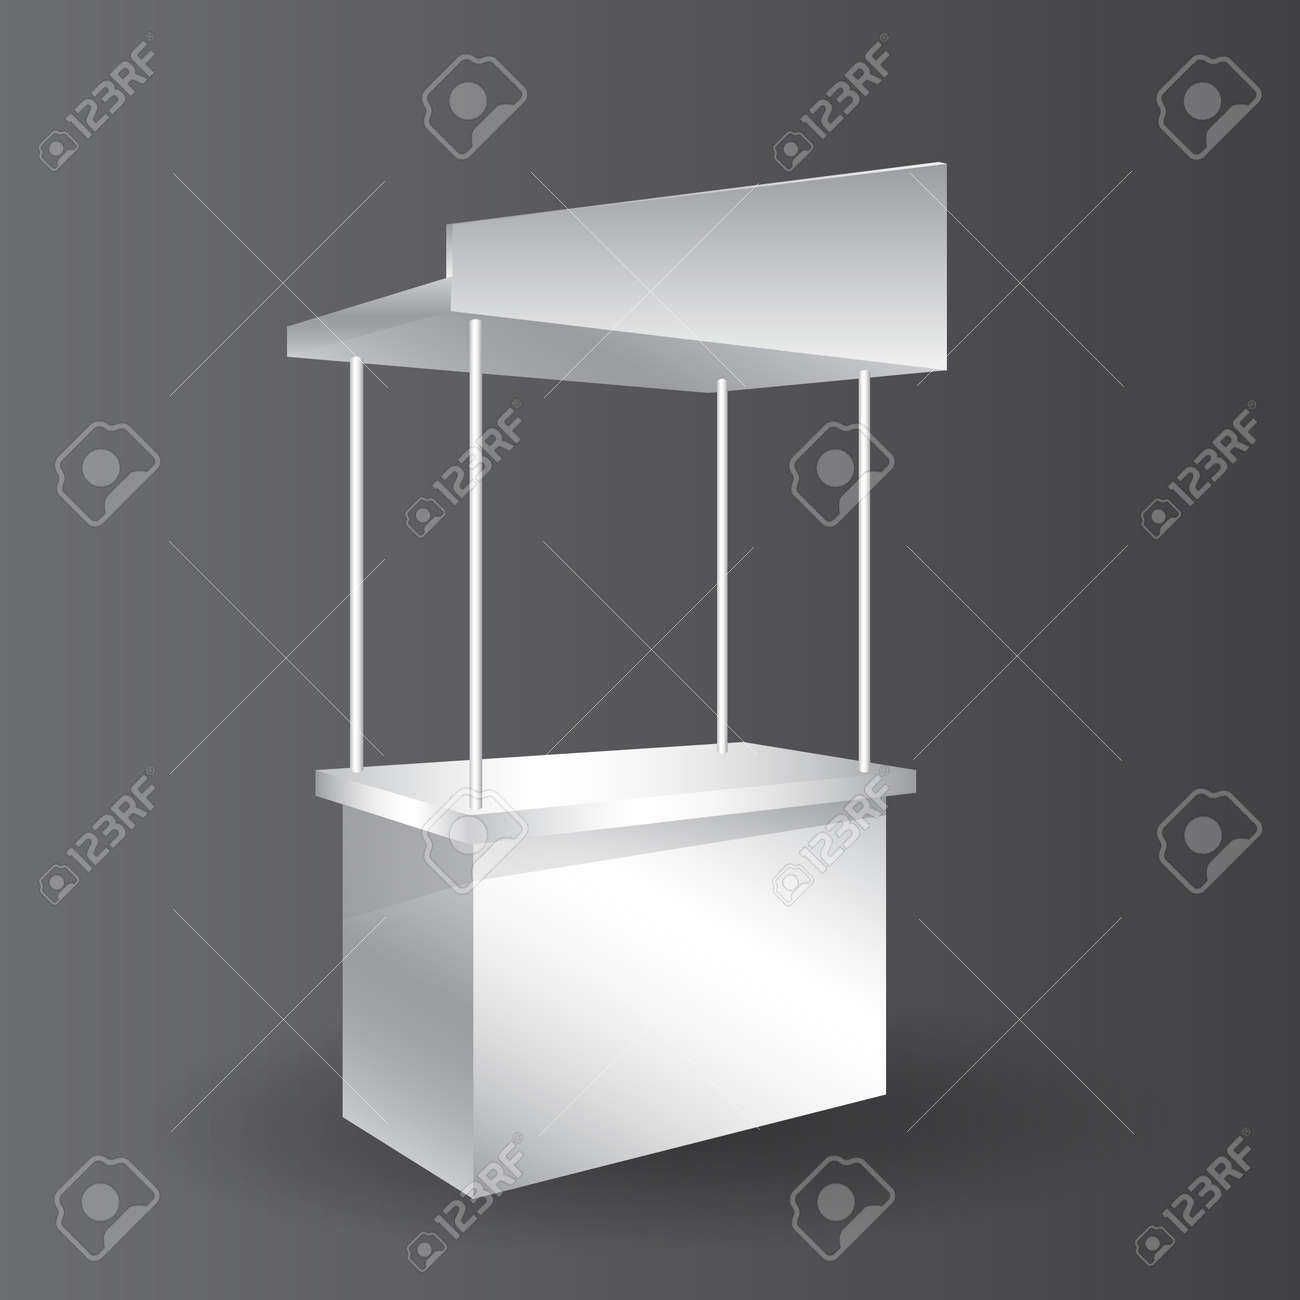 counter promotion exhibition stand mockup for event, Advertising POS POI Display Rack Shelves For Supermarket Floor Showcase. - 156425122